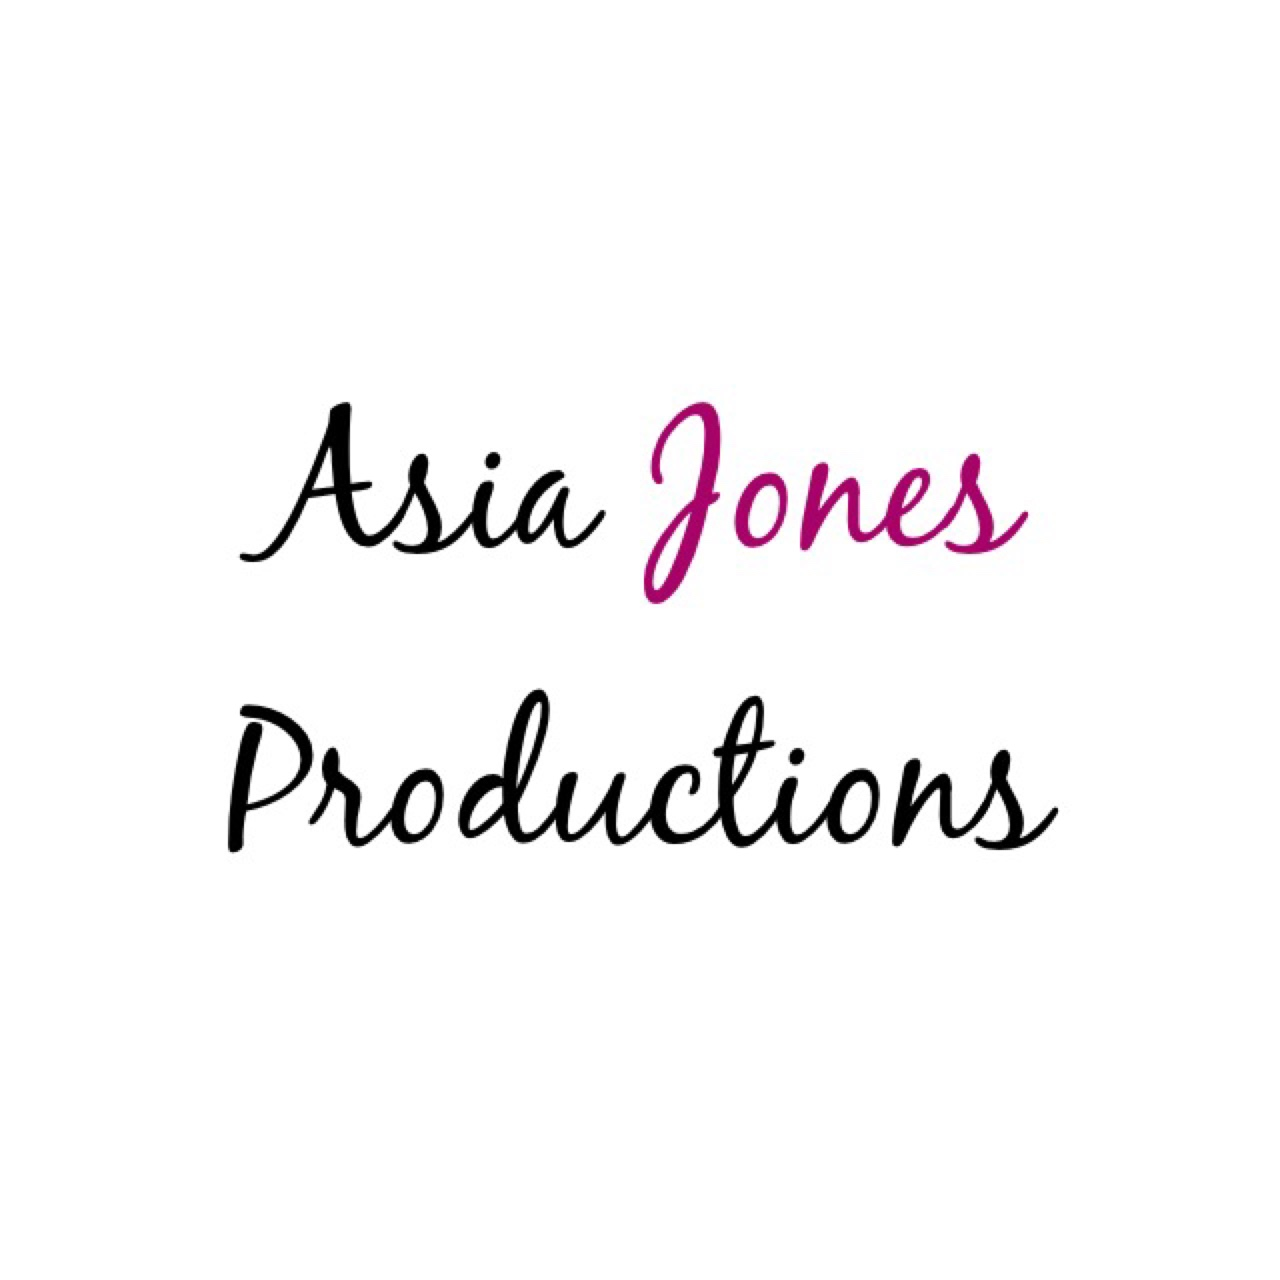 Asia Jones Productions